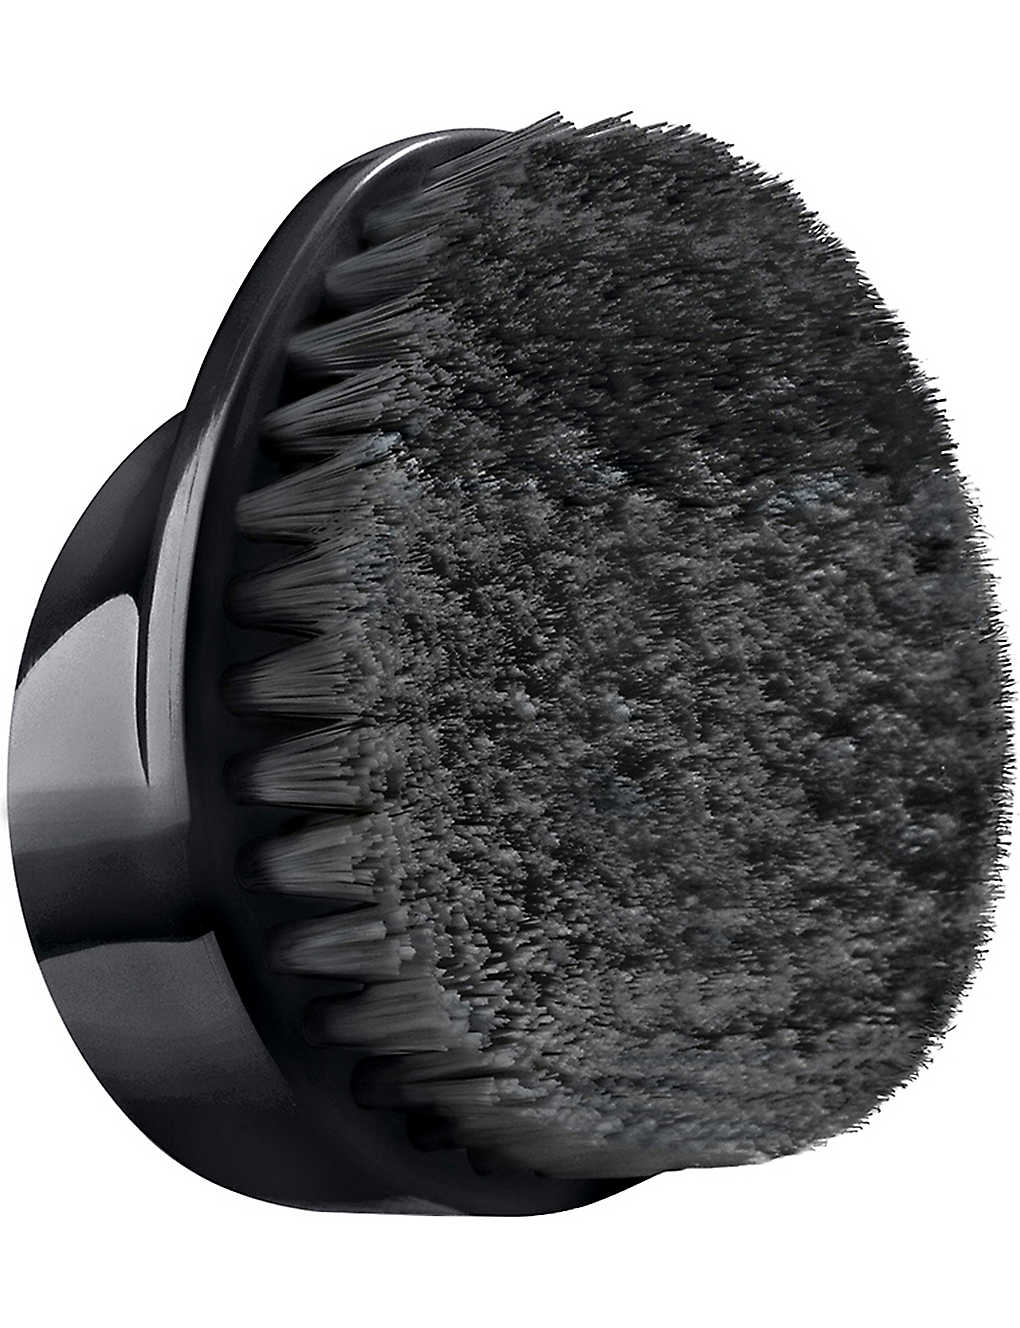 CLINIQUE: Sonic system cleaninsing brush head